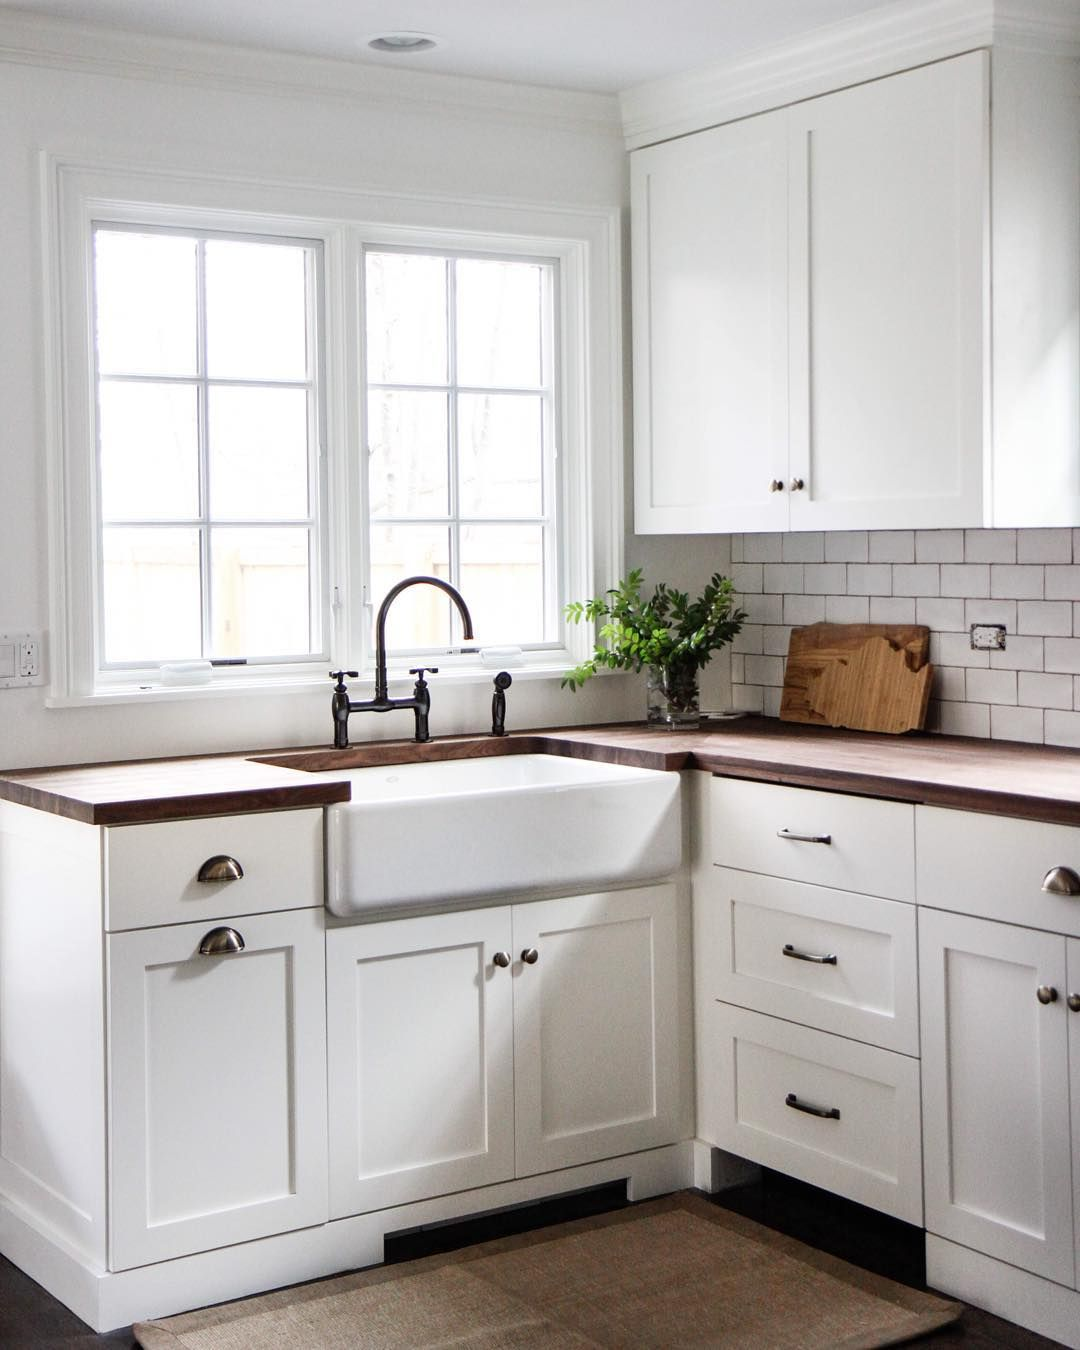 sink kitchen cabinets appliance set butcher block counters white subway tile farmhouse hardware